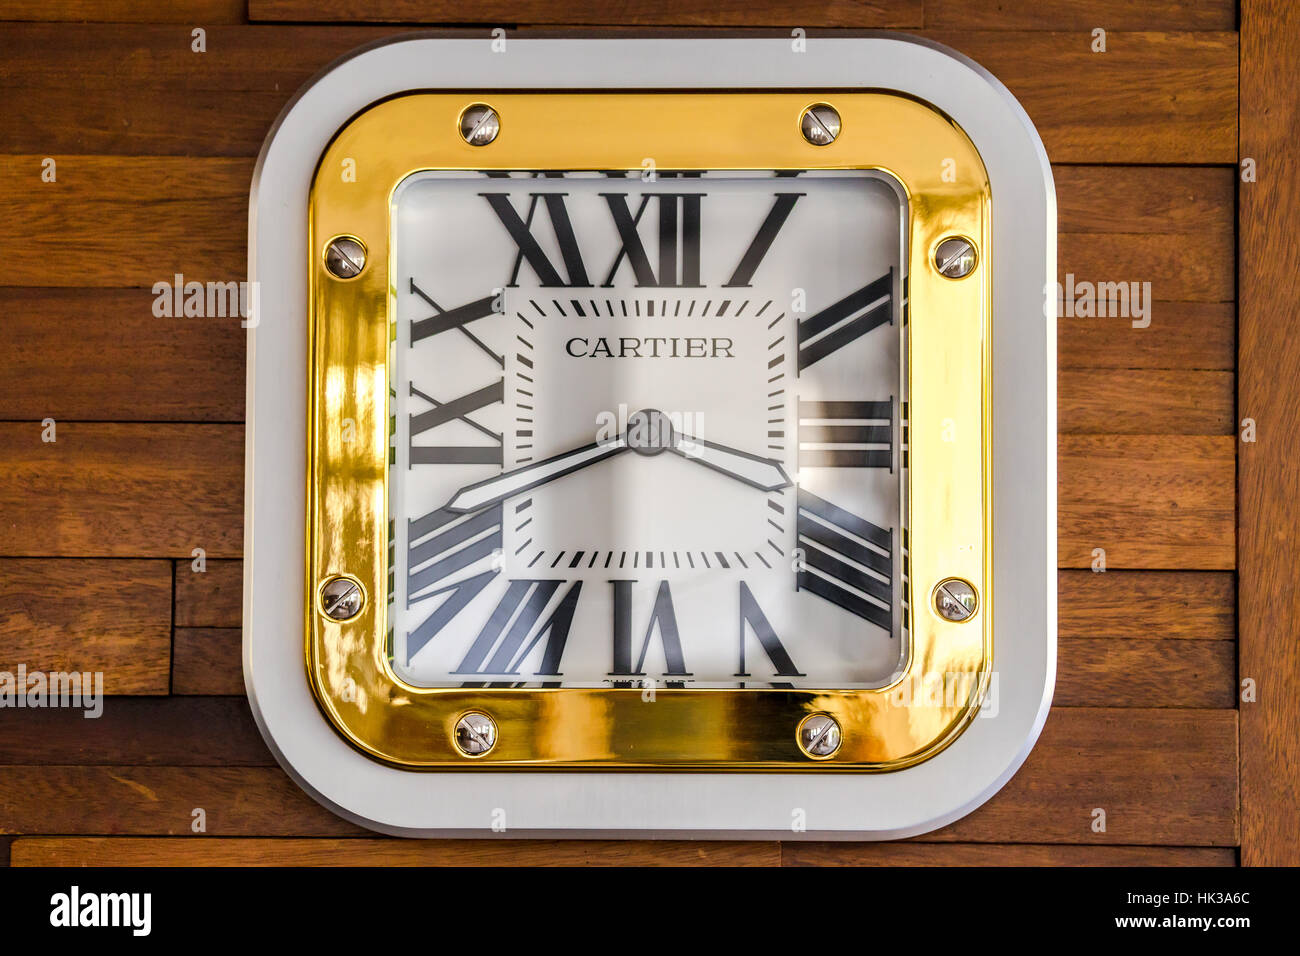 Luxury cartier square wall clock on a wooden wall stock photo luxury cartier square wall clock on a wooden wall amipublicfo Images